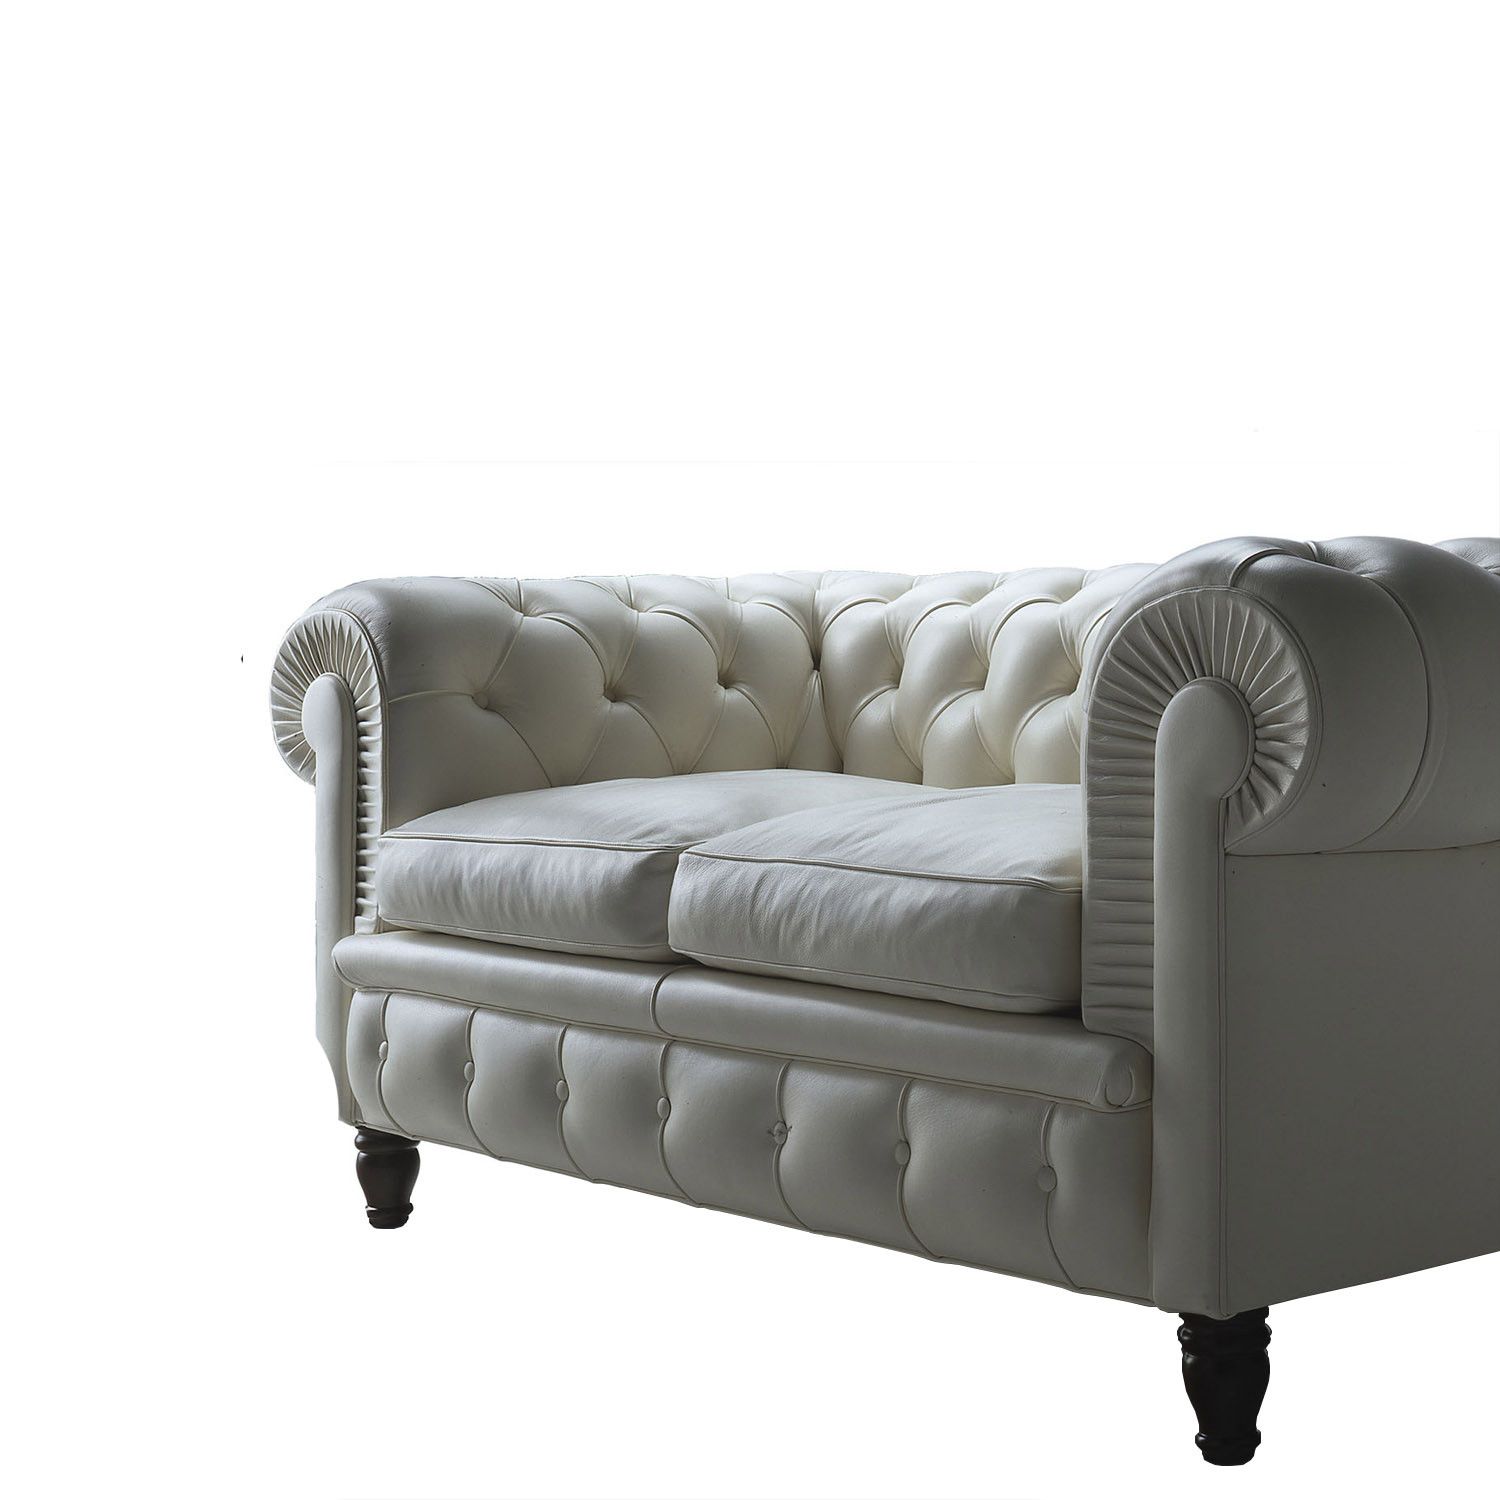 better furniture sofas wicker garden chester | one office apres